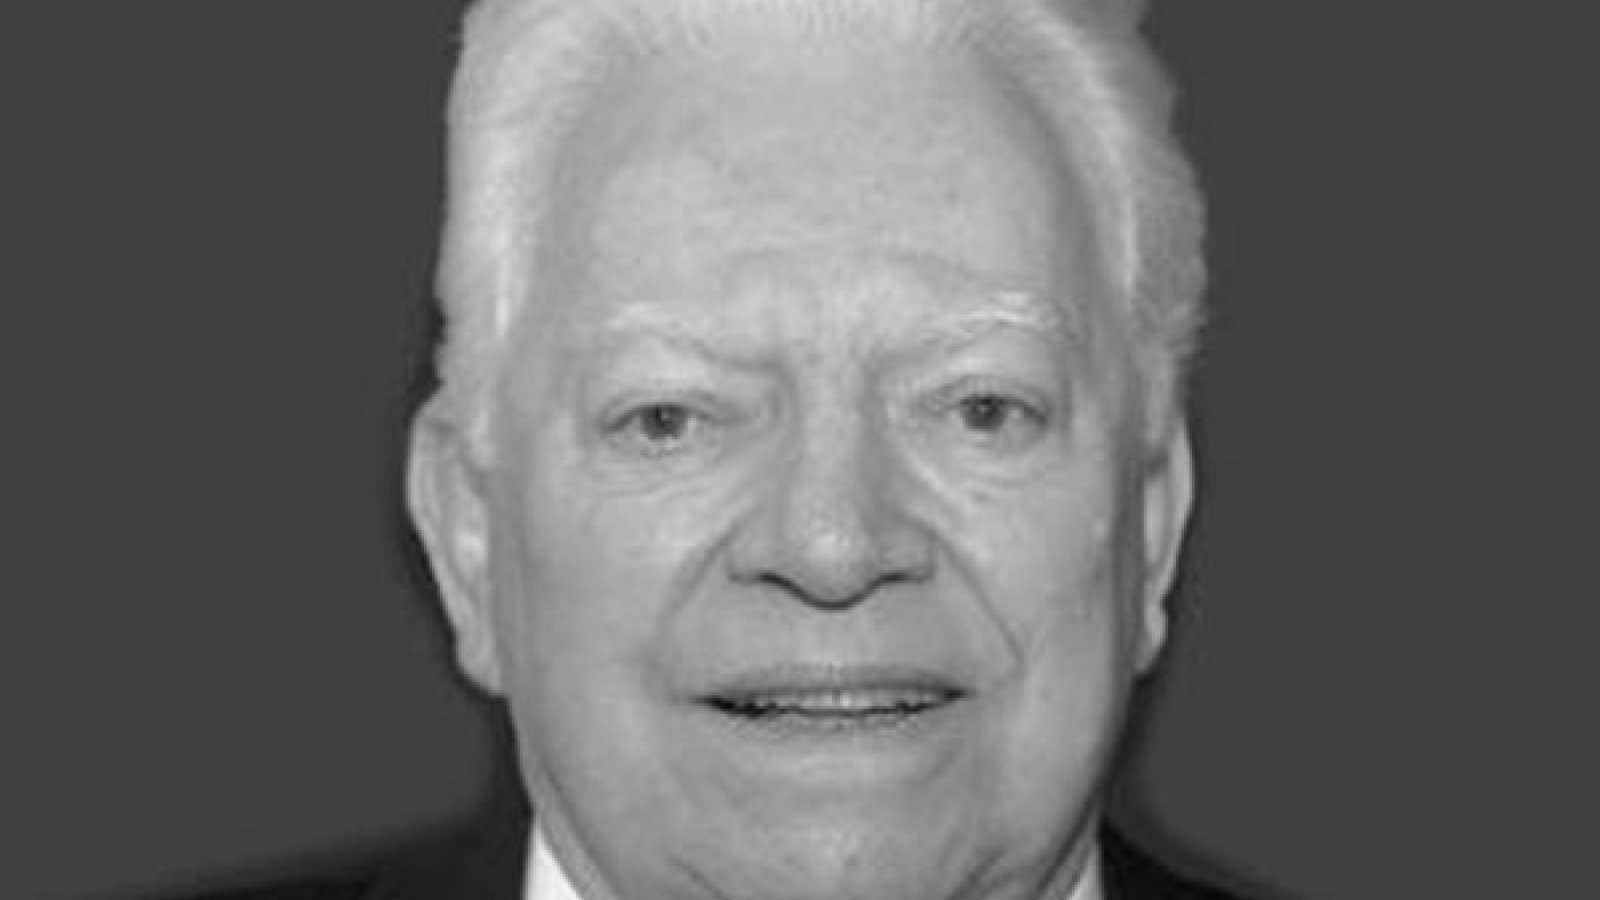 Don Nelson, a longtime professor of electrical engineering and a driving force in bringing the University of Nebraska into the computing age, died on Jan. 23. He was 88.